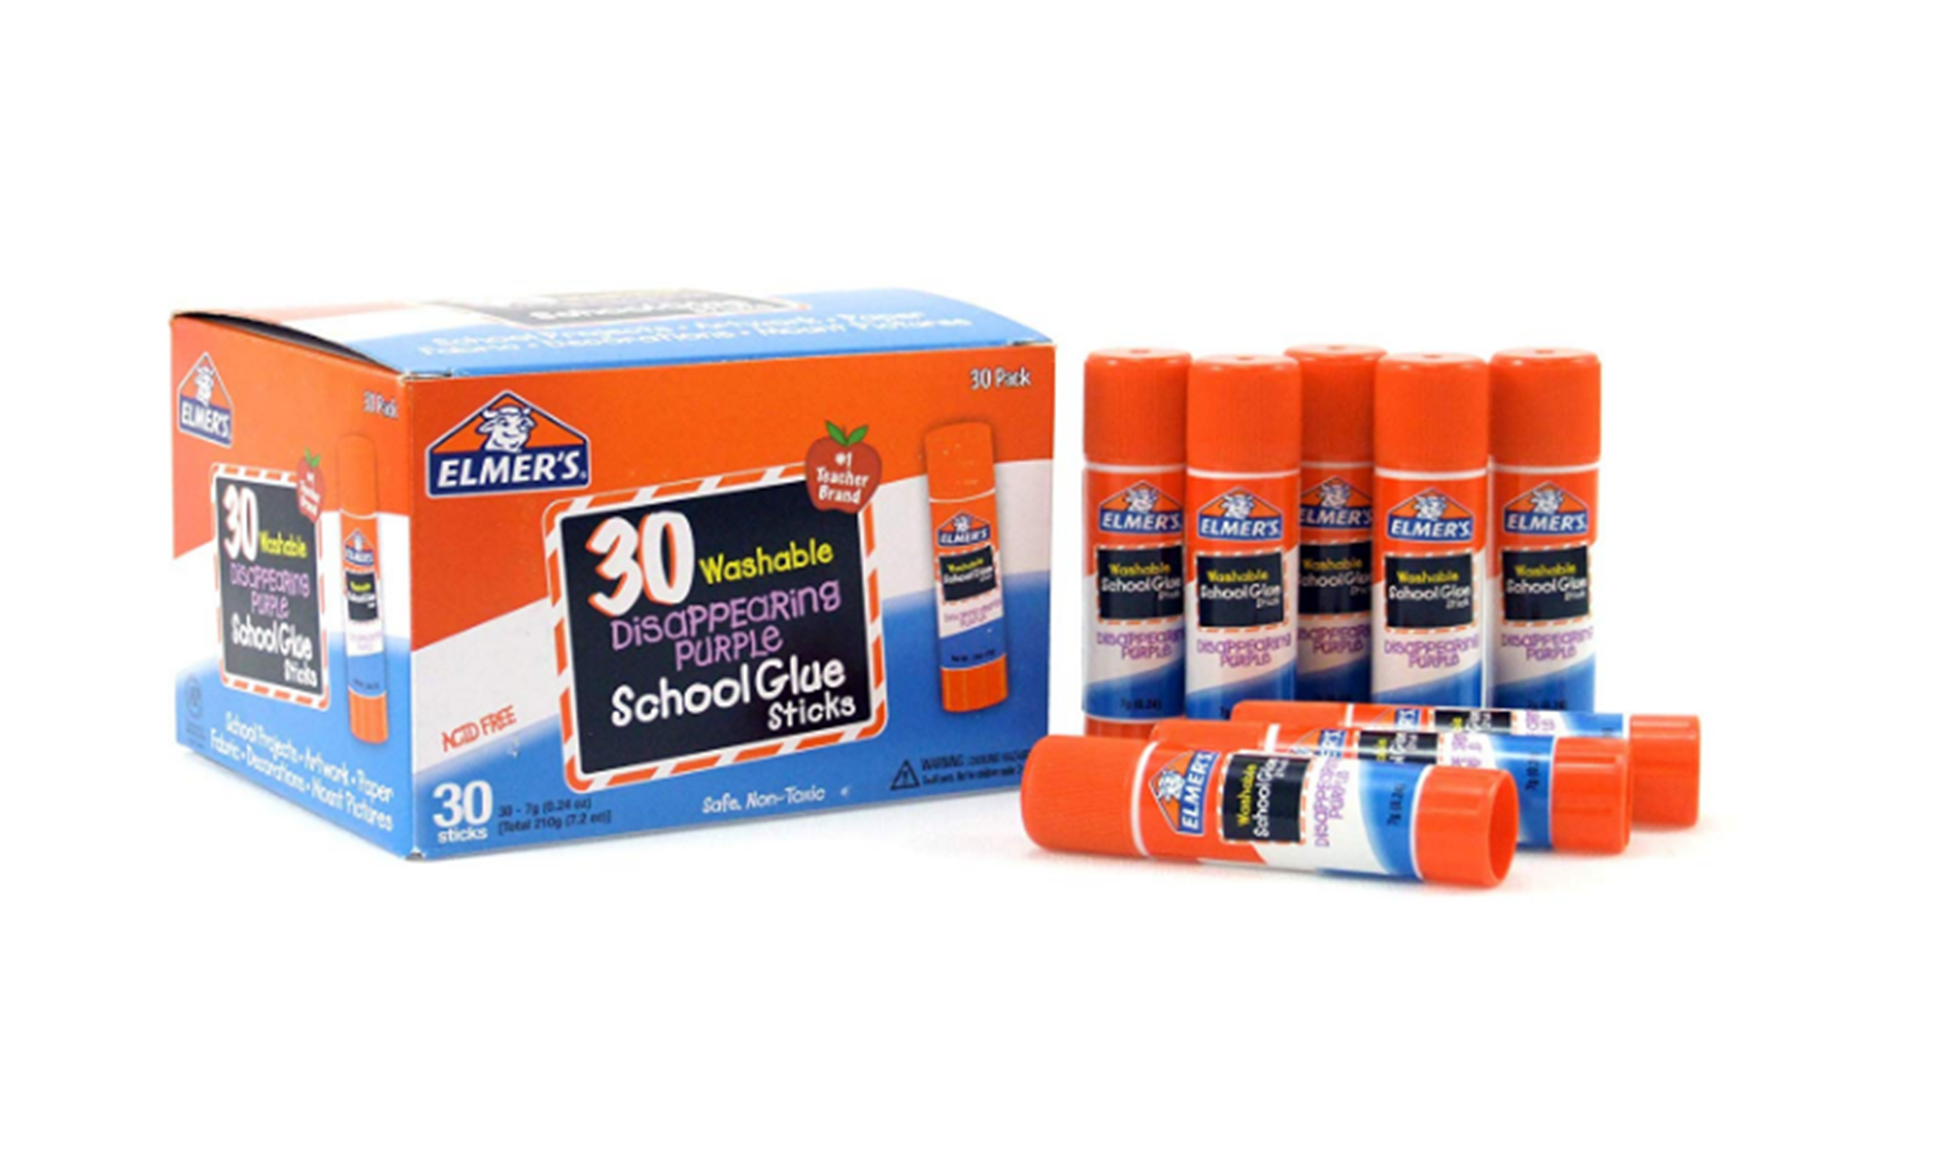 Amazon – Elmer's Disappearing Purple School Glue 30-Pack Only $5.48, Reg $14.99!